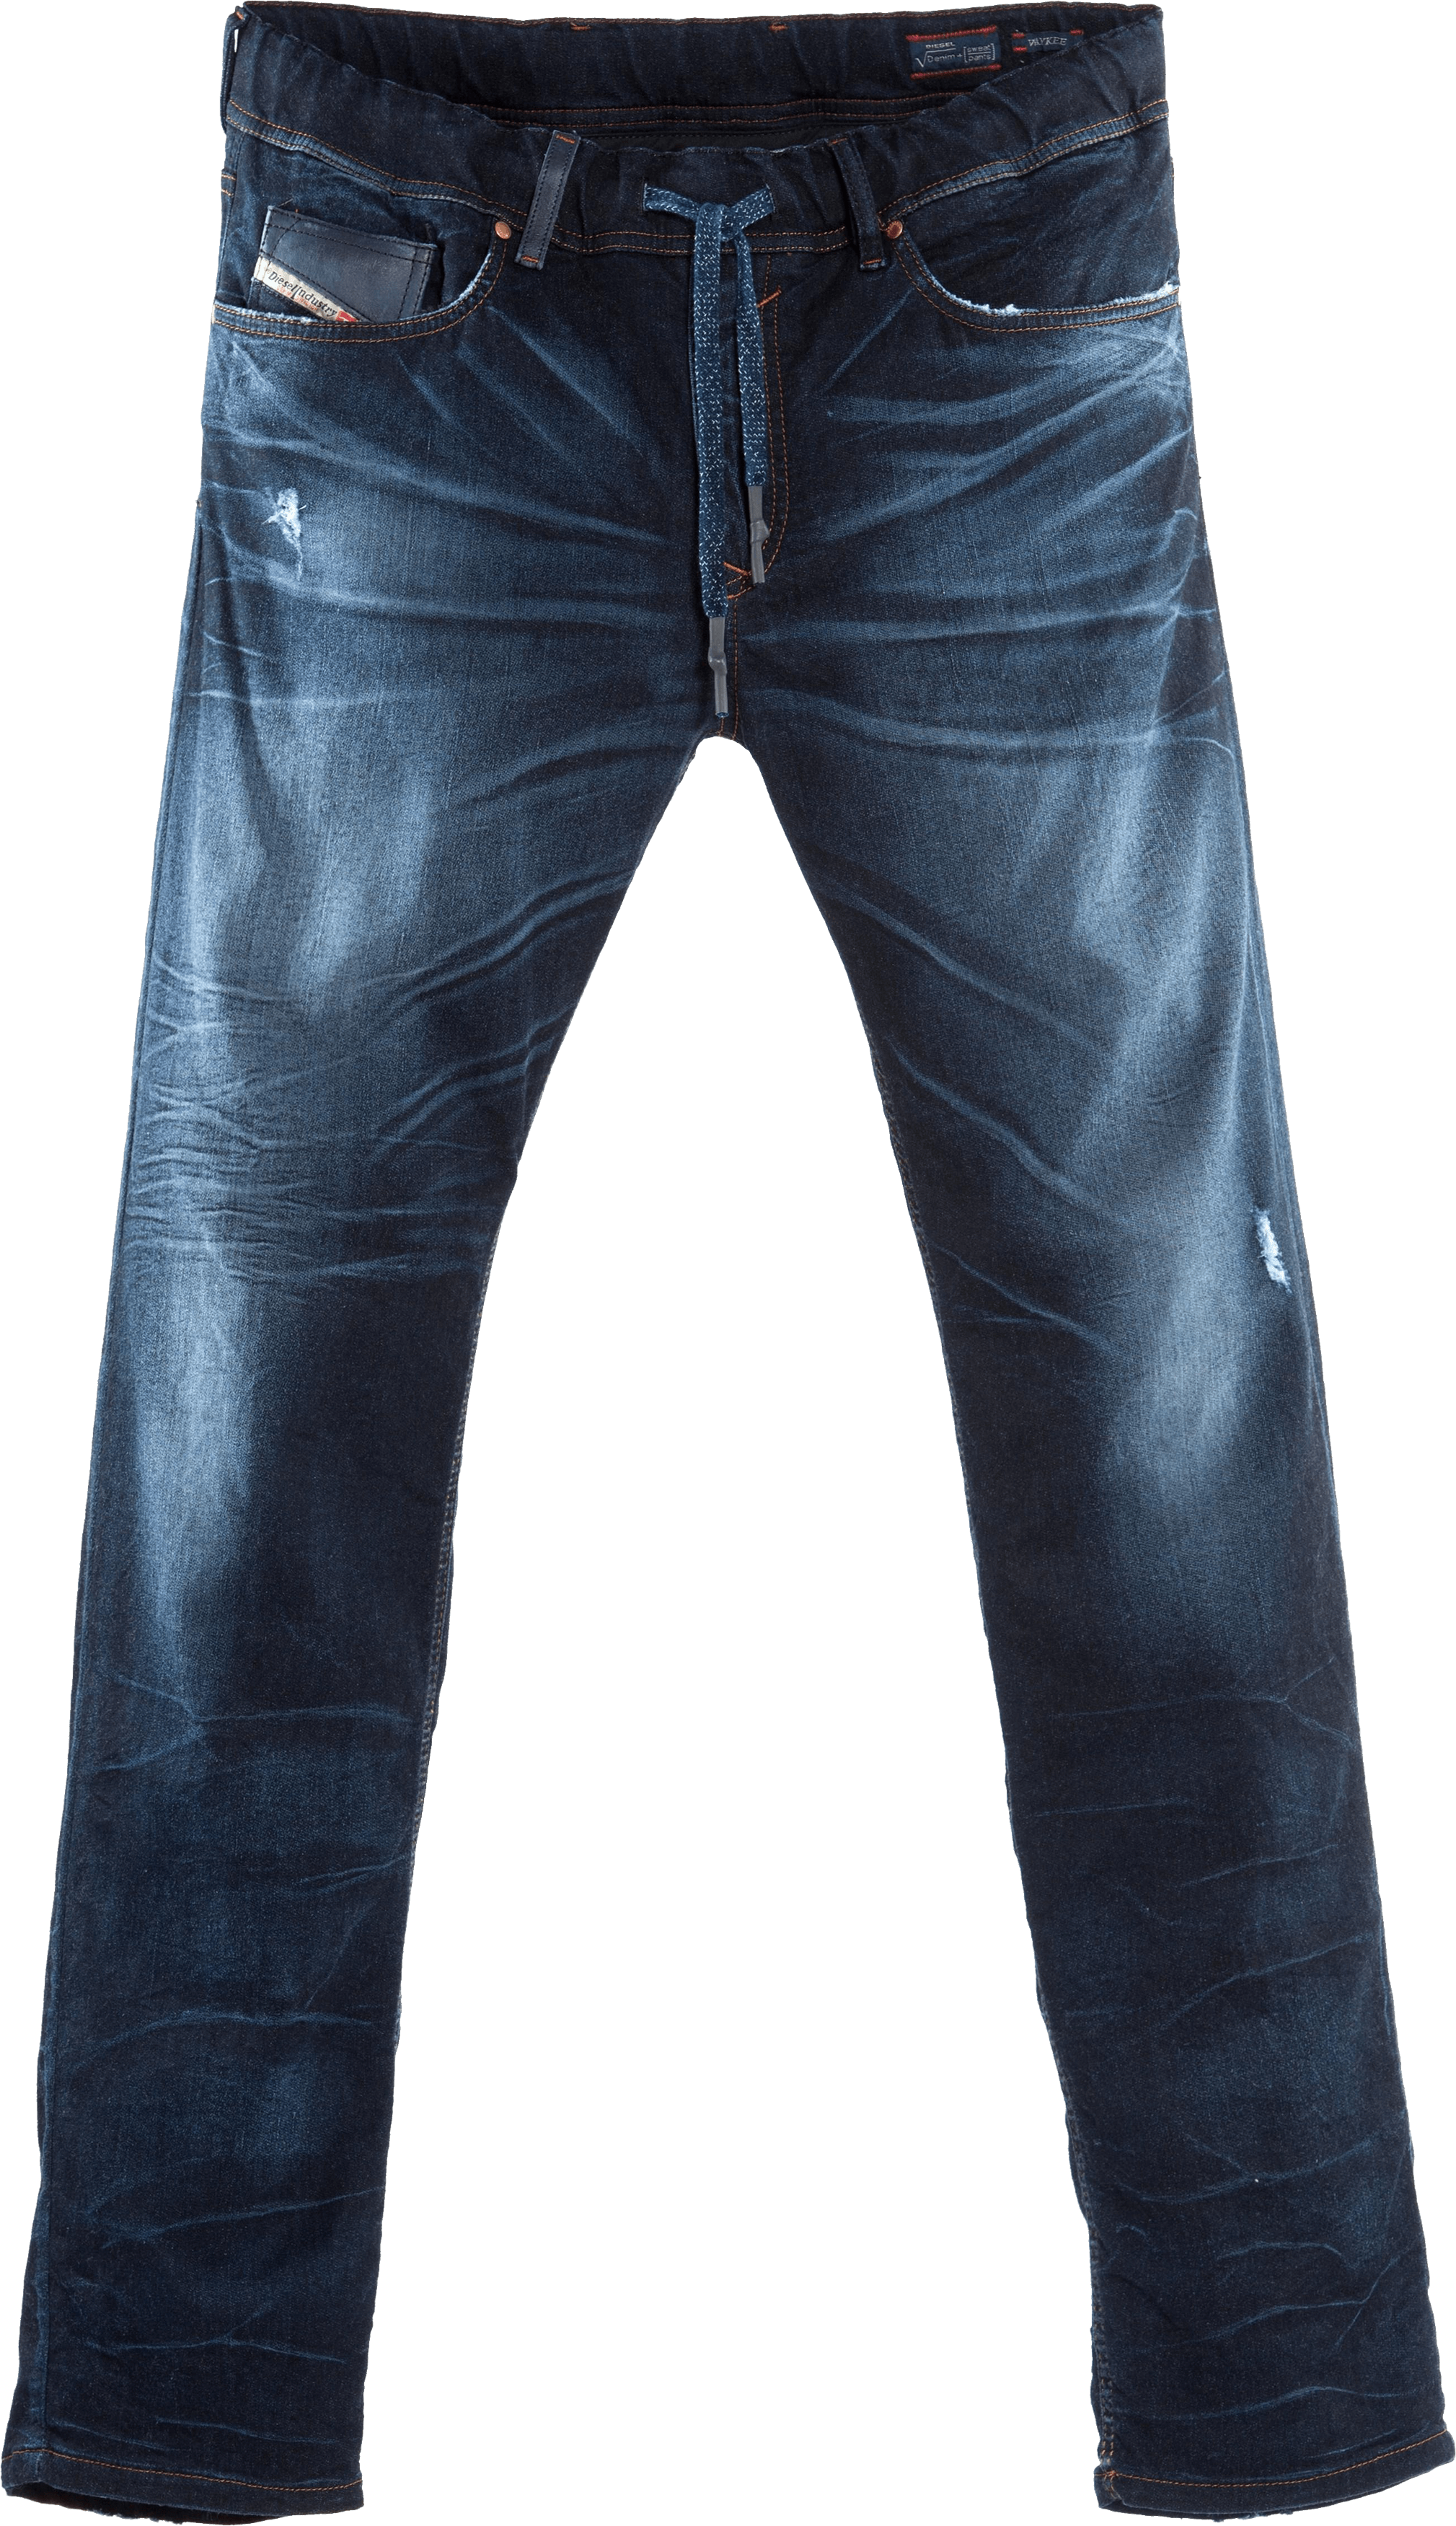 Jeans PNG - 16044